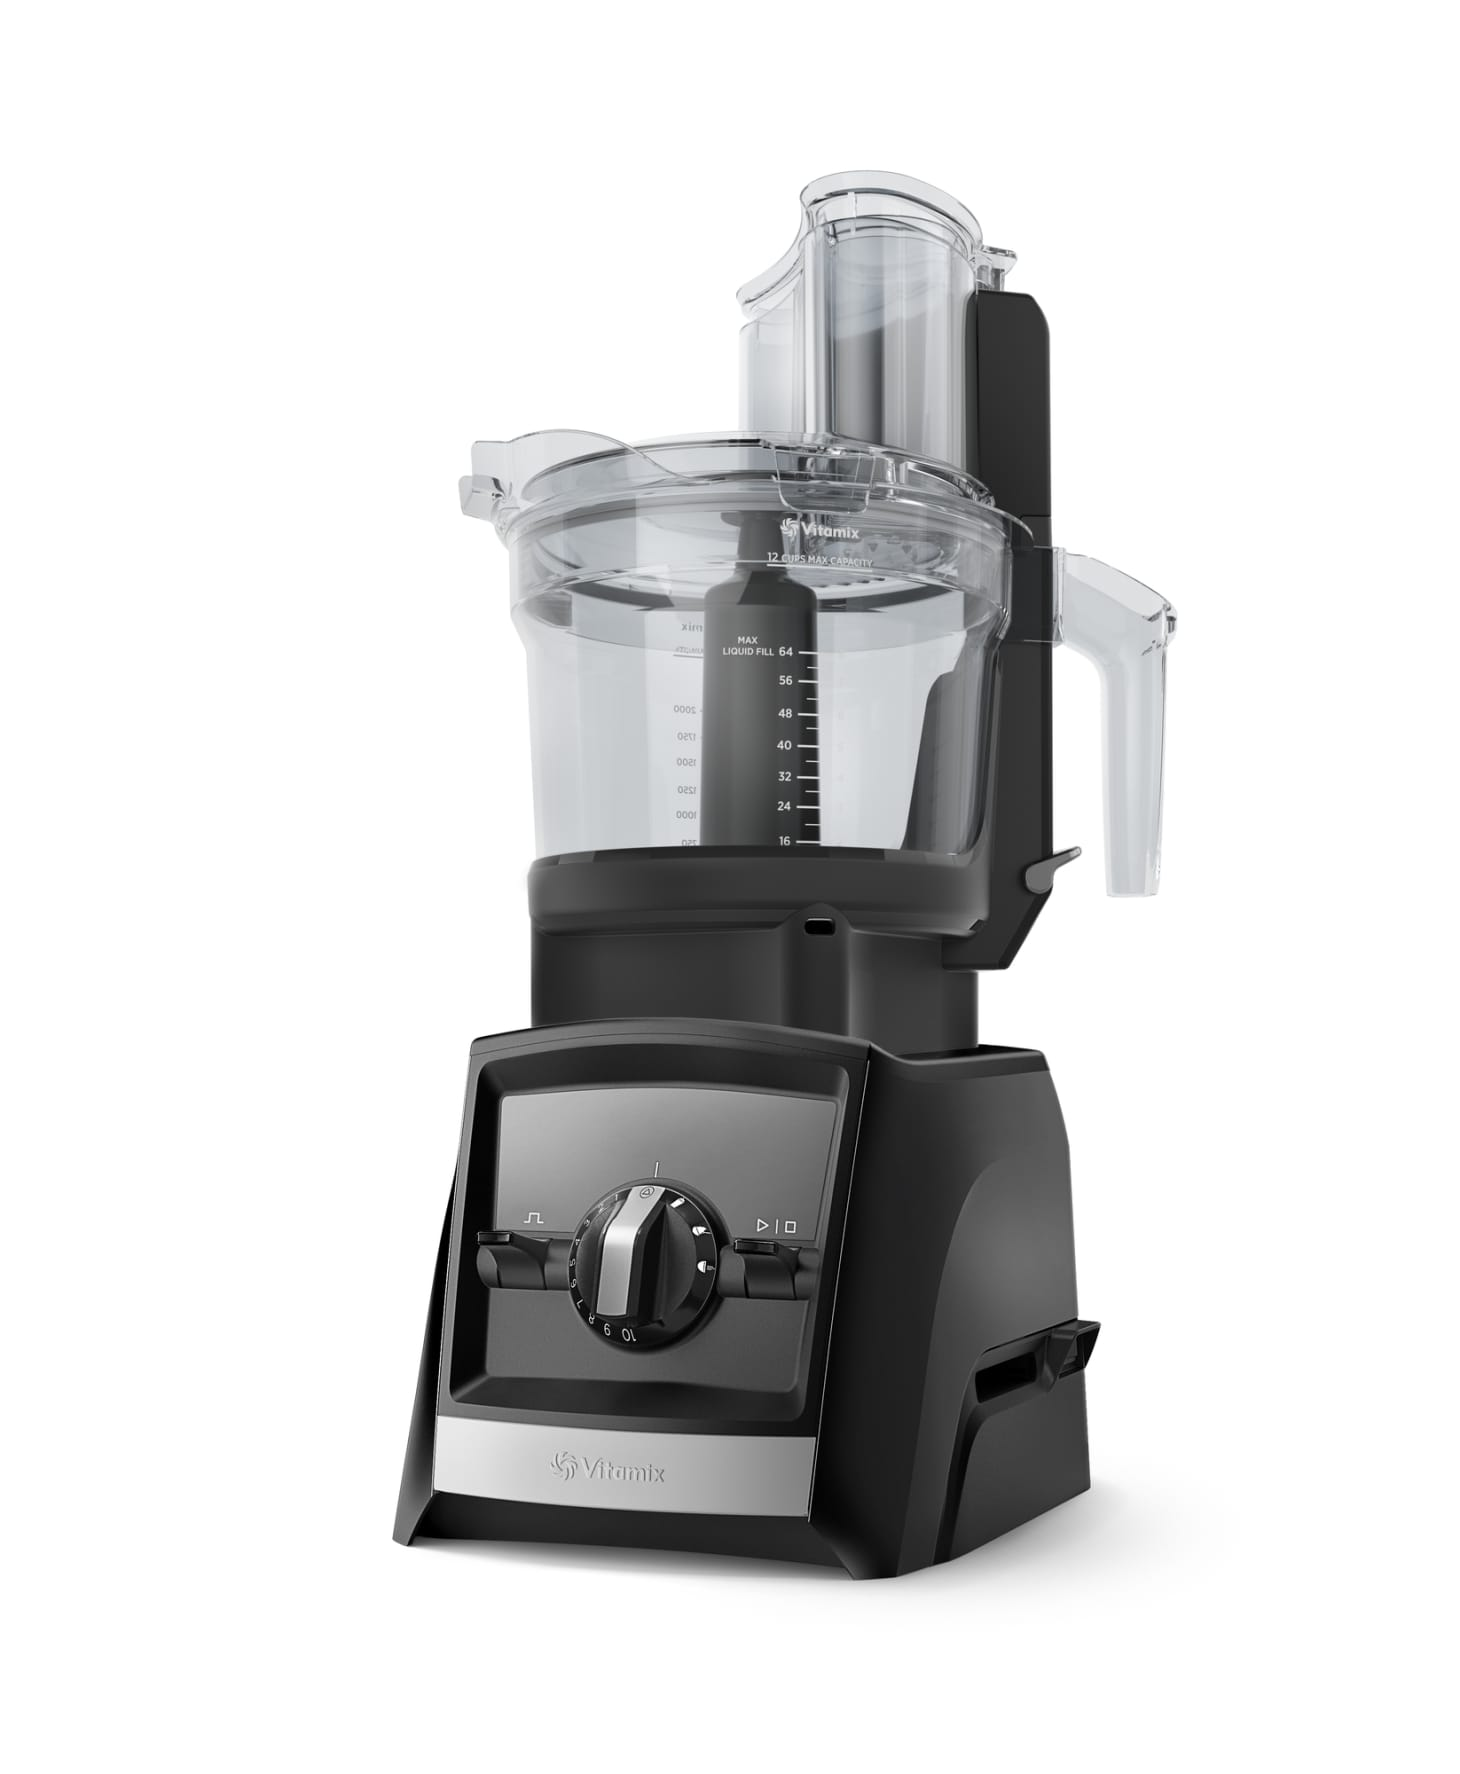 foodie-gifts-vitamix-food-processor